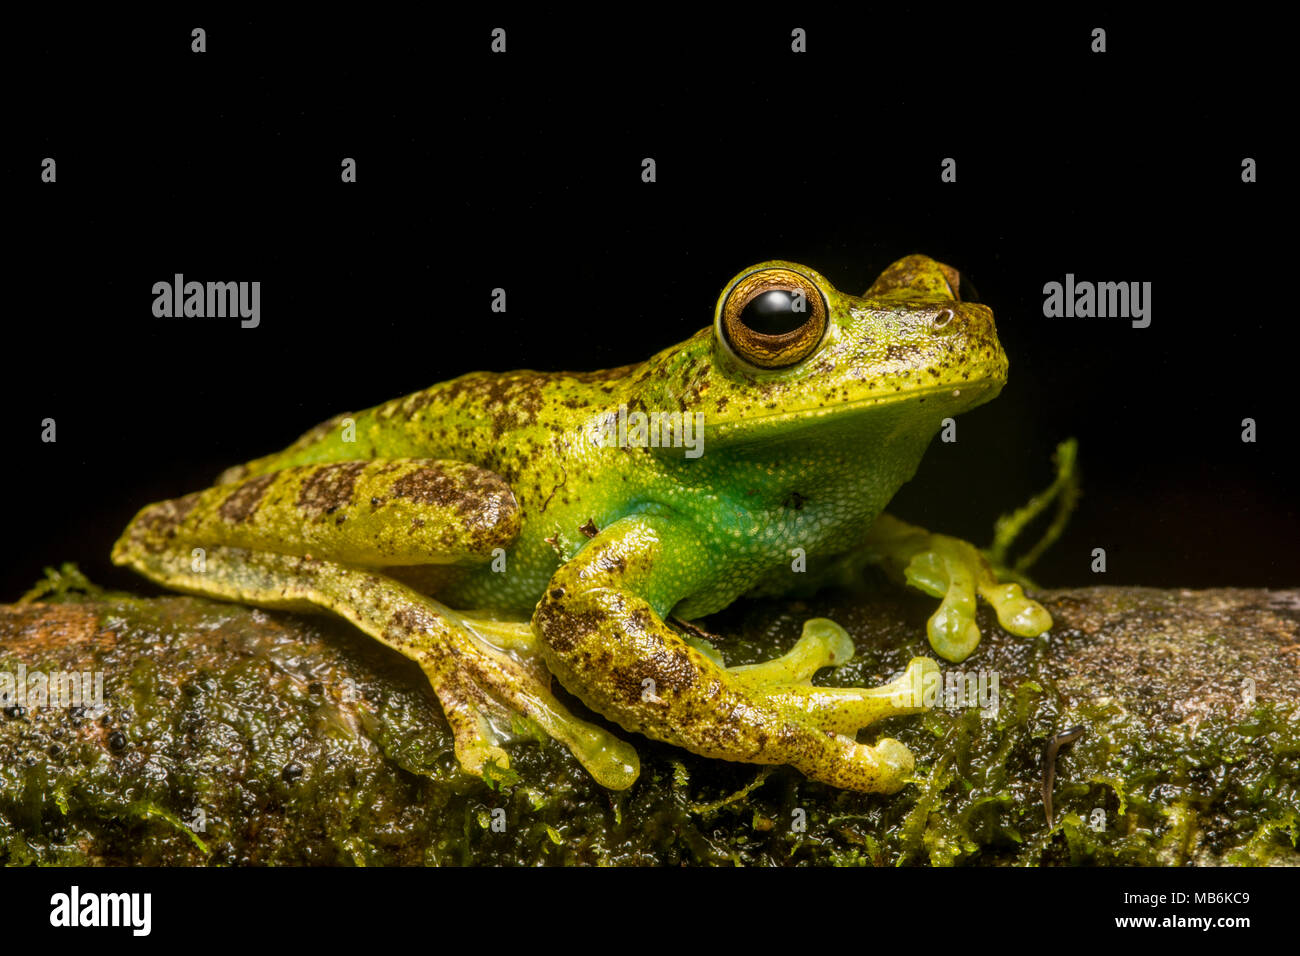 A Palmar Treefrog (Hypsiboas pellucens) from the Ecuadorian Andes, this species is also found in Colombia. It is a beautiful and elusive species. - Stock Image